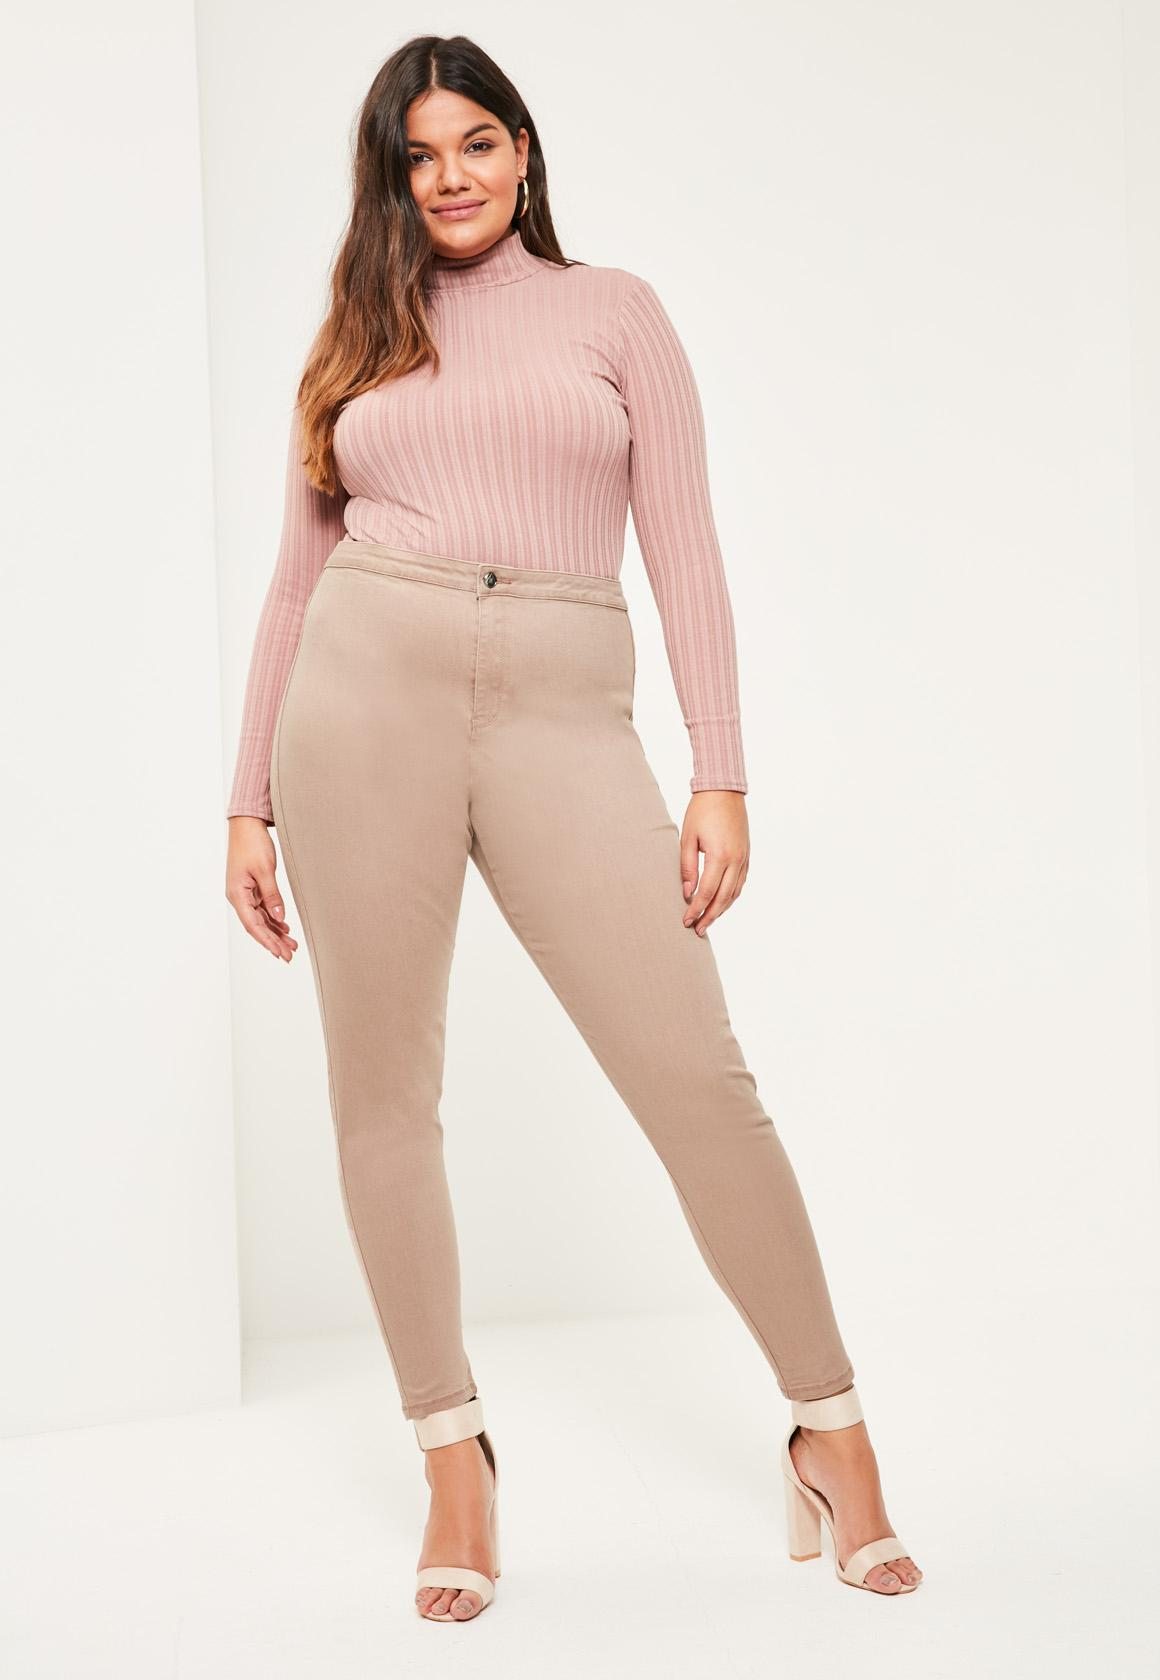 1f45f20a93aa0 Missguided - Plus Size Camel High Waisted Skinny Jeans